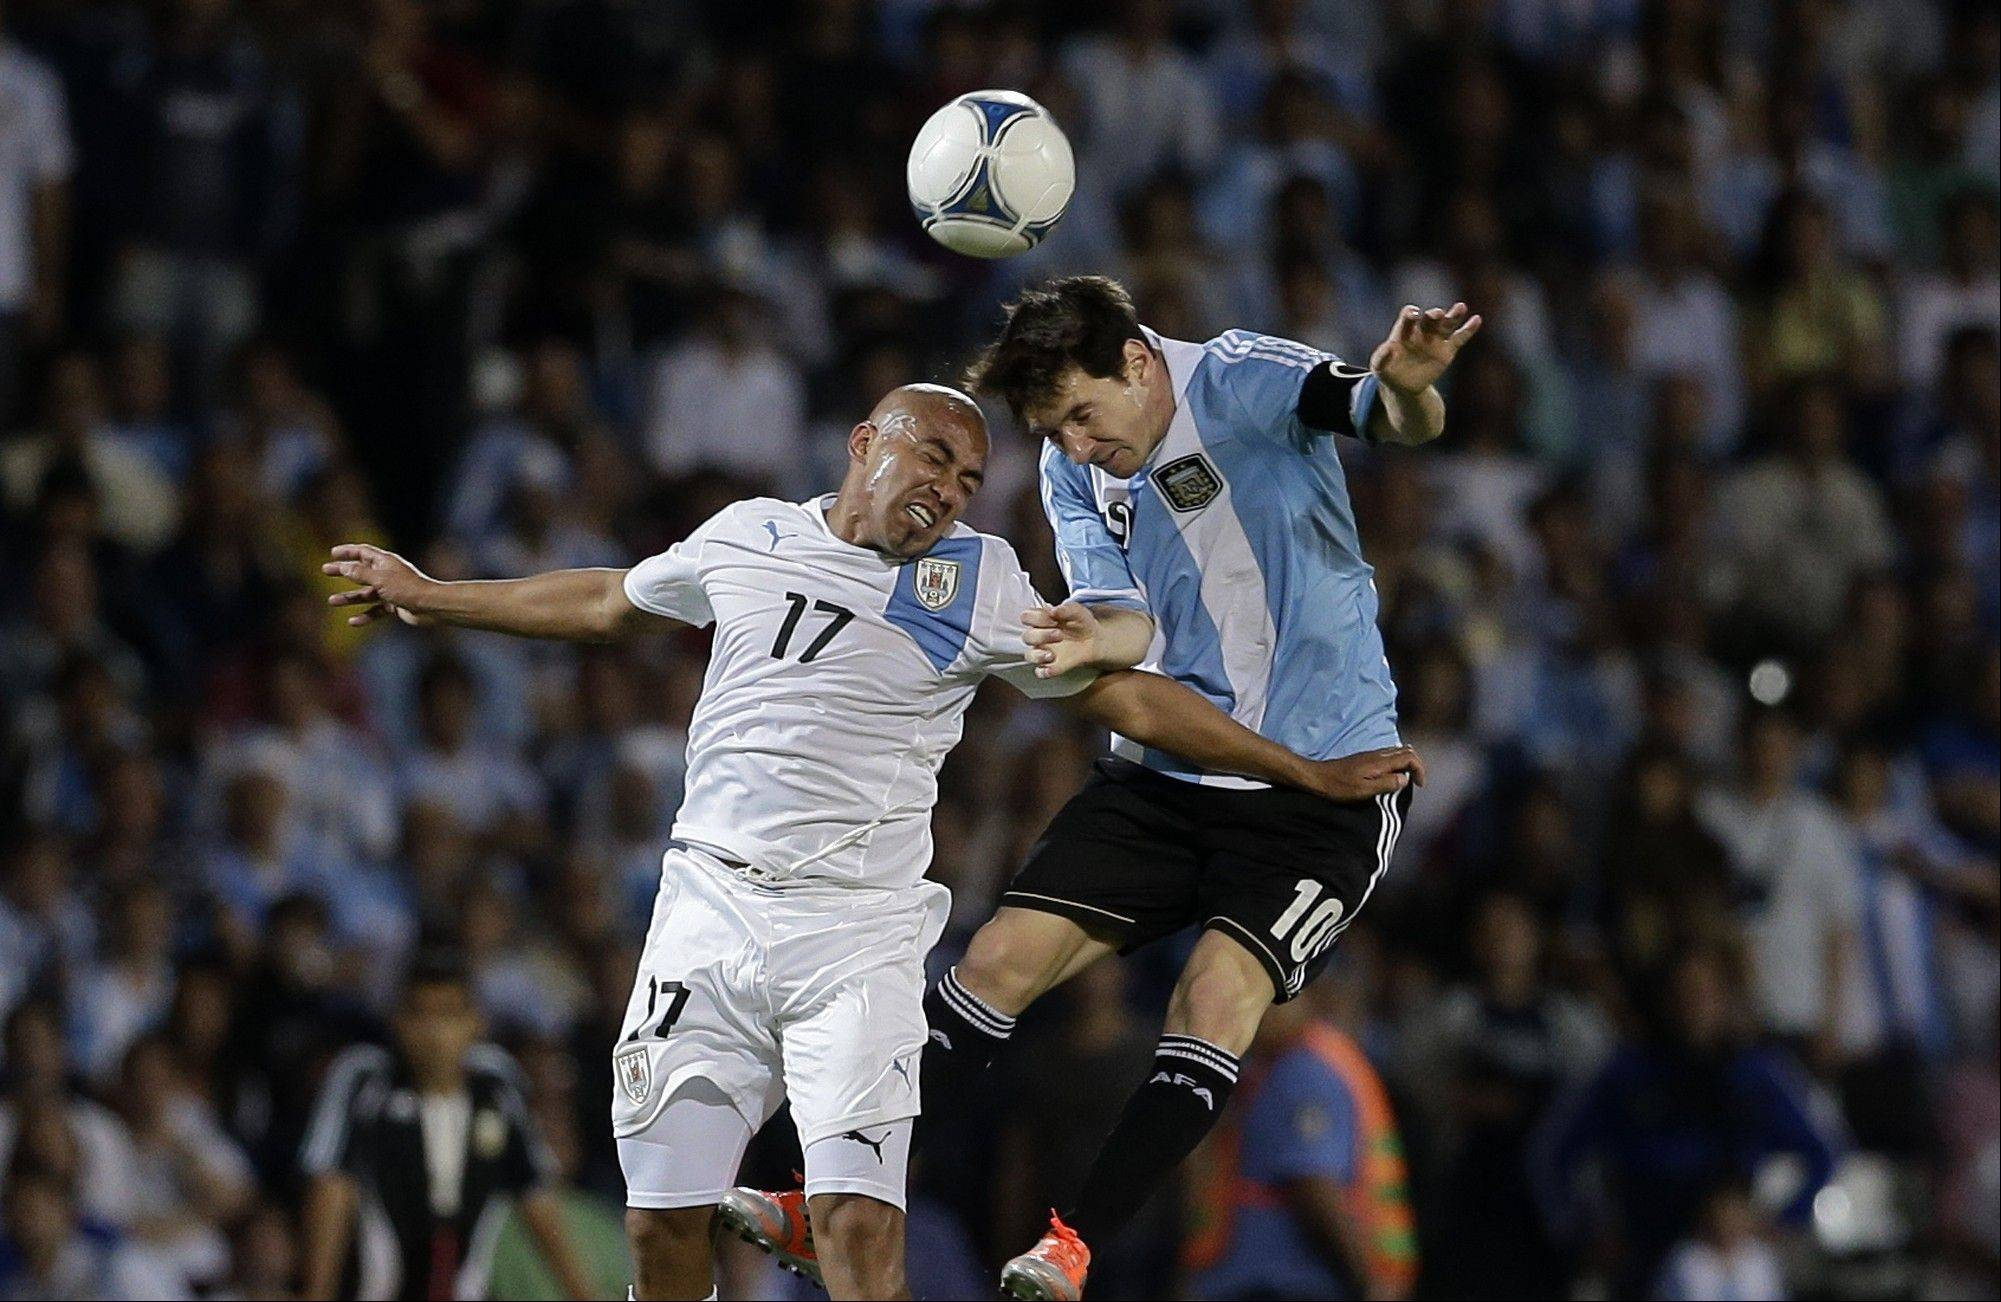 Uruguay's Arevalo Rios, at left going against Argentina's Lionel Messi in a World Cup qualifying match, has signed with the Chicago Fire.